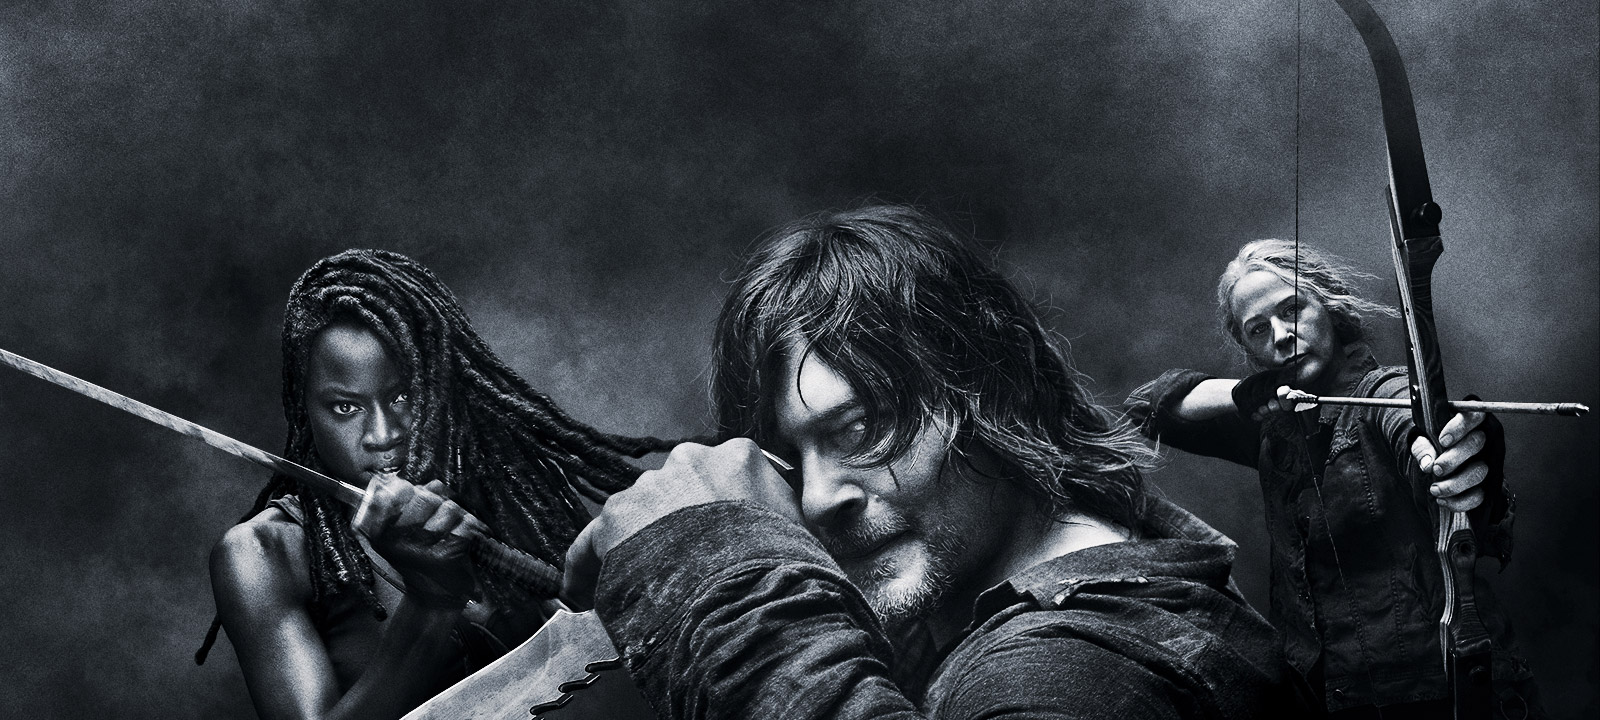 the-walking-dead-season-10-michonne-gurira-daryl-reedus-cci-800×600